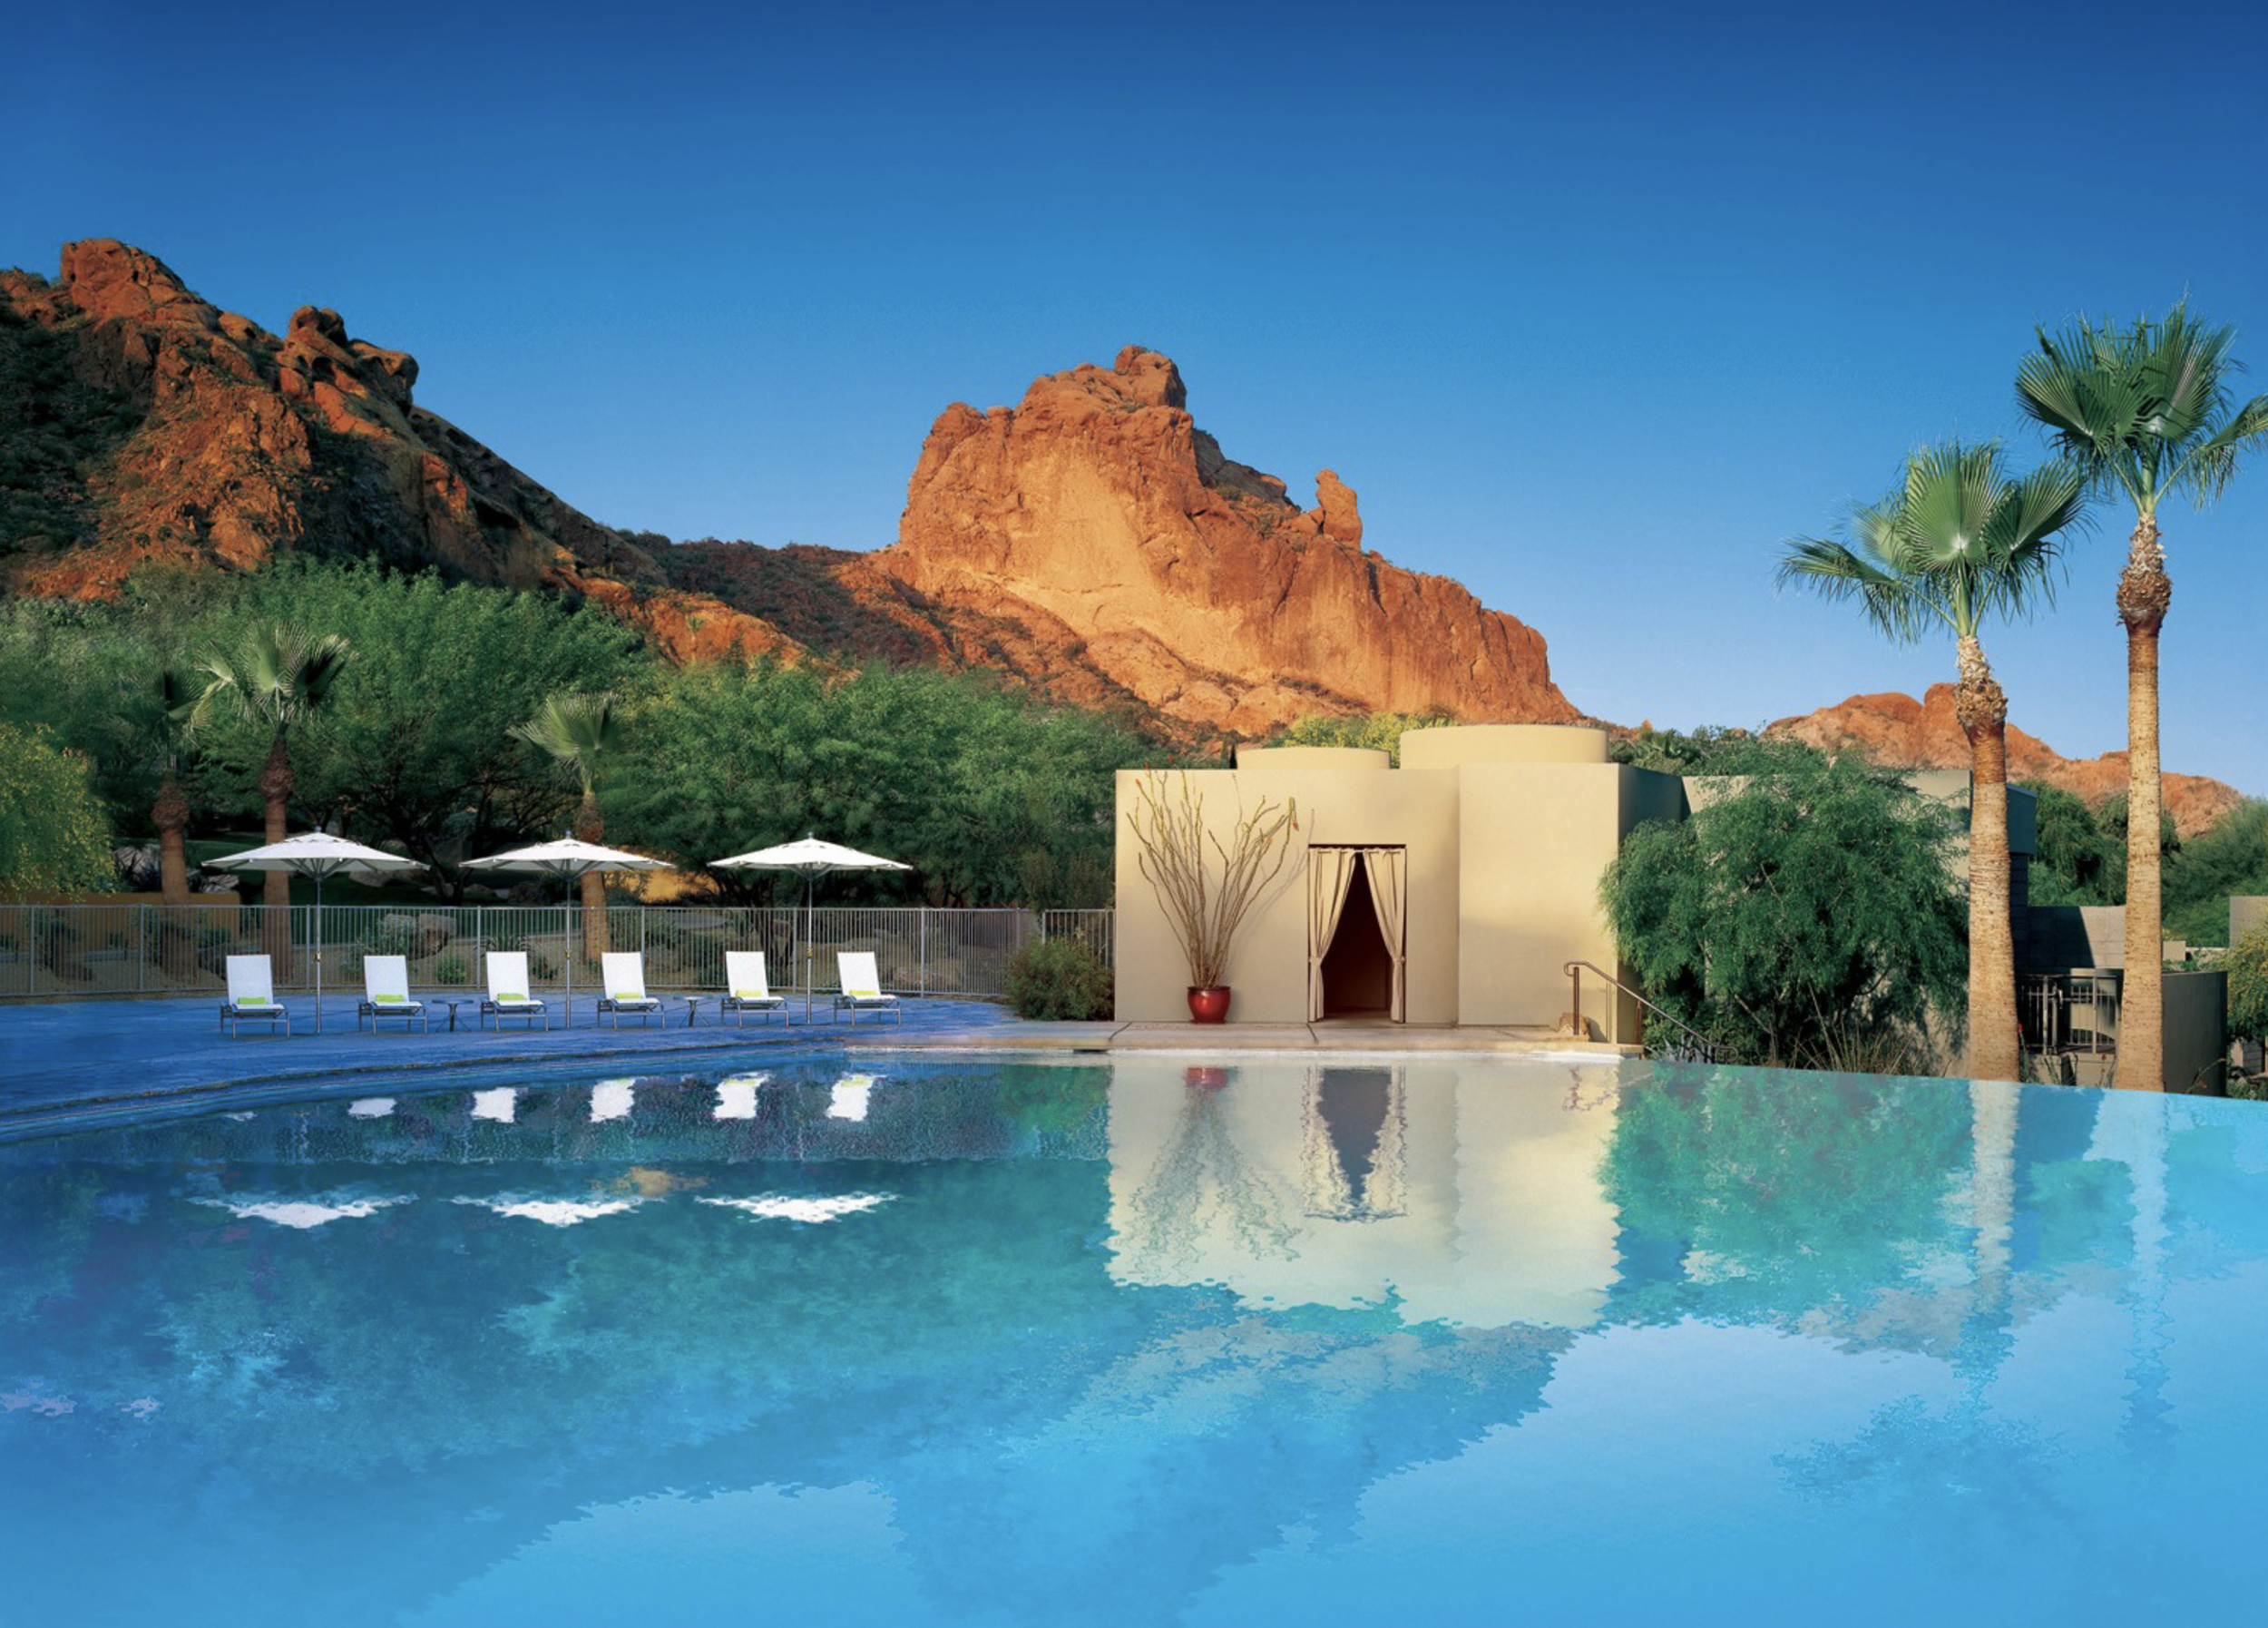 Image courtesy Sanctuary Camelback Mountain Resort and Spa